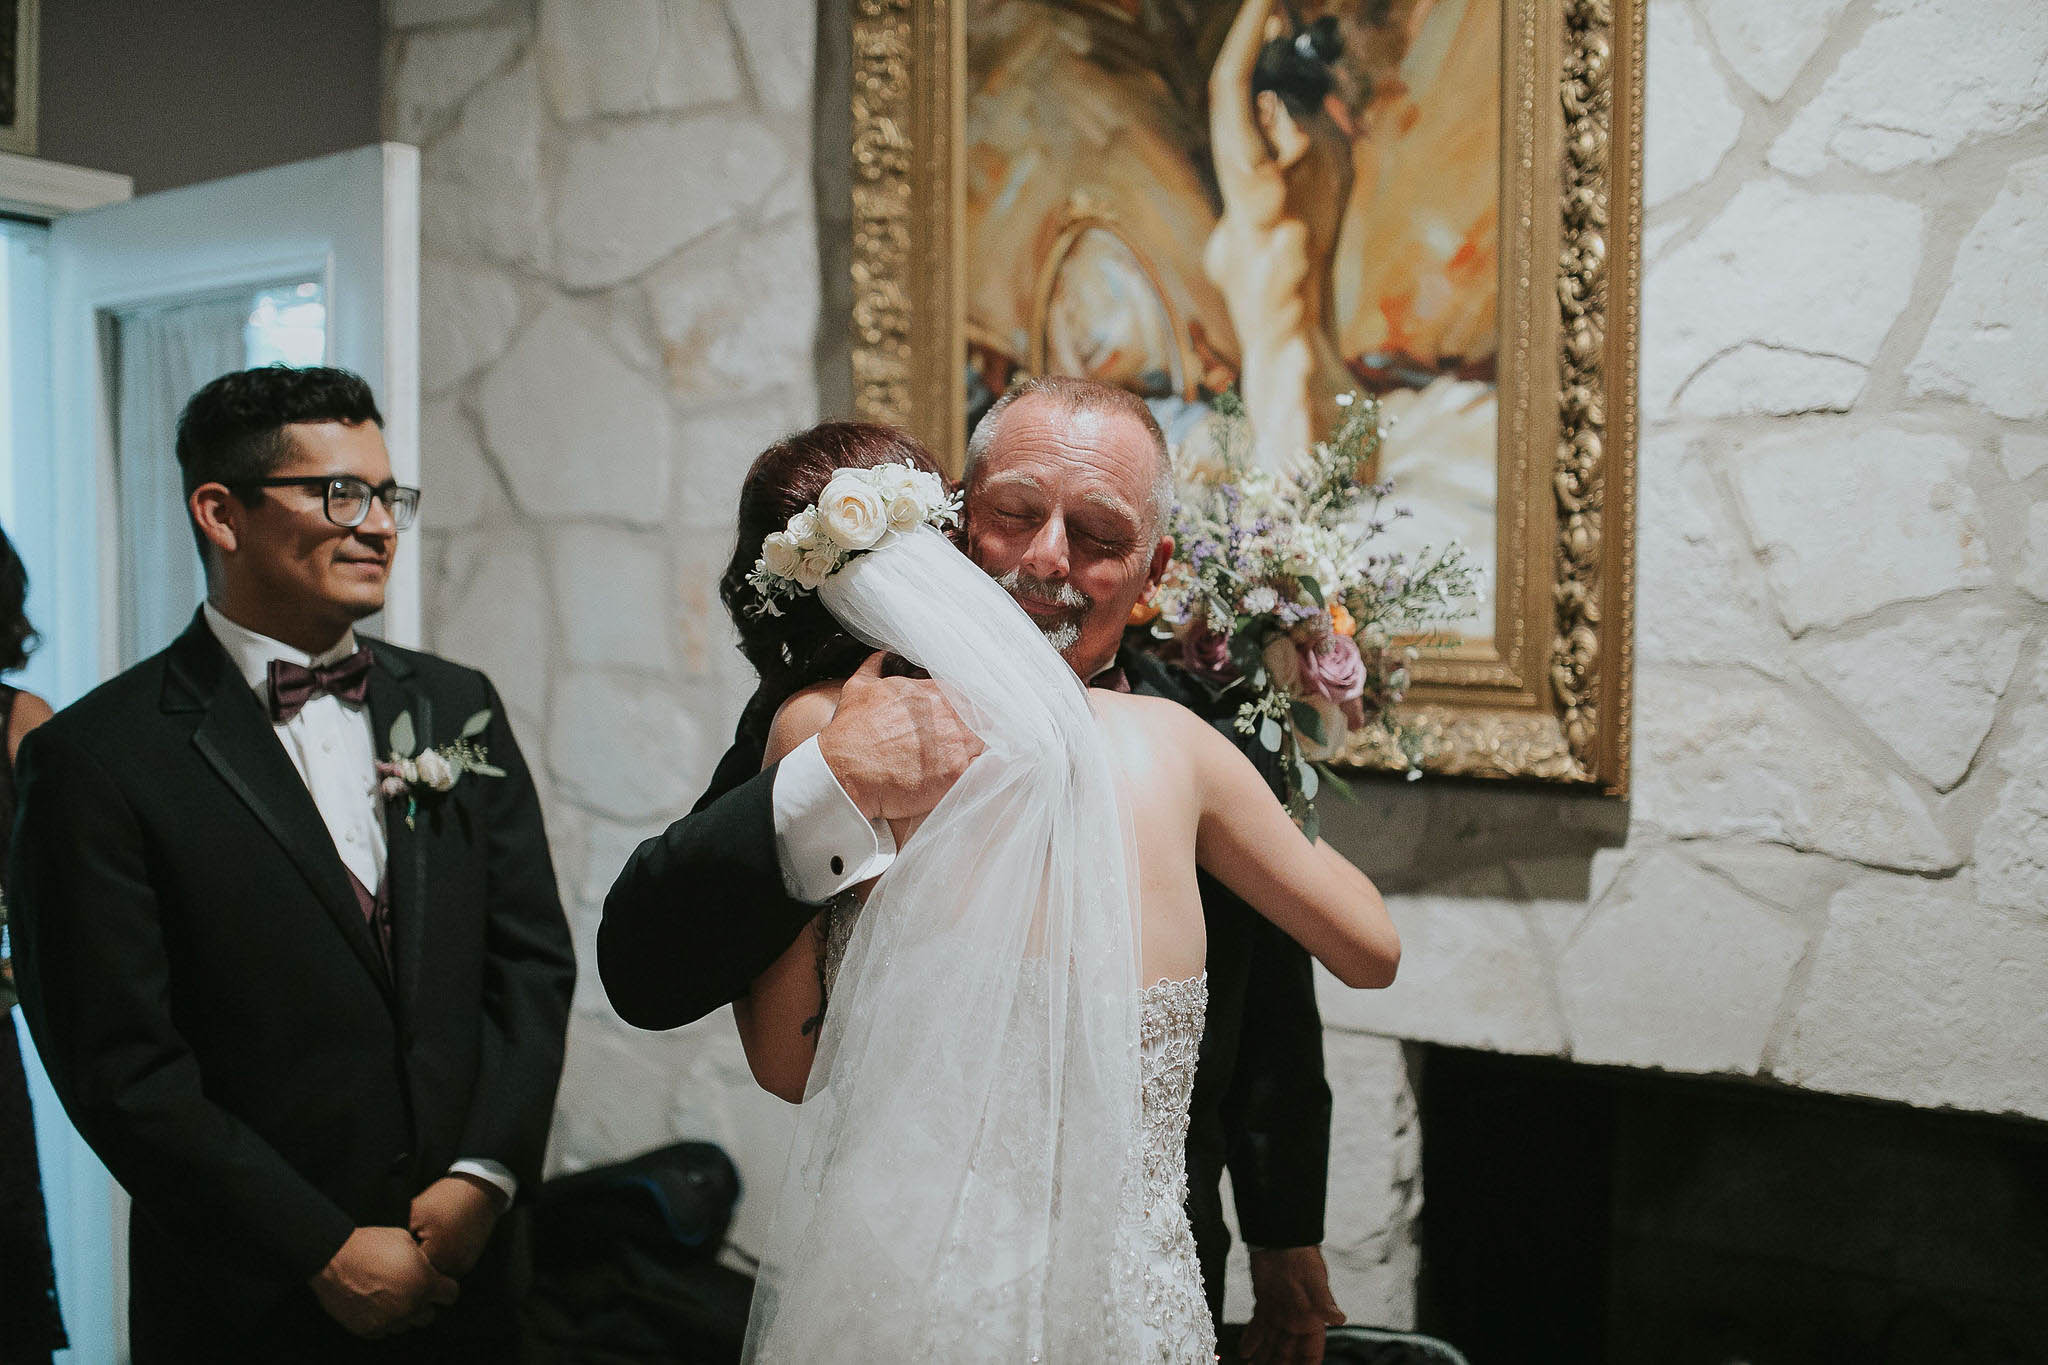 Father of the groom embraces his new daughter in law after the wedding ceremony. Shot at Casa Blanca Austin Texas by David C. Allen Photography.